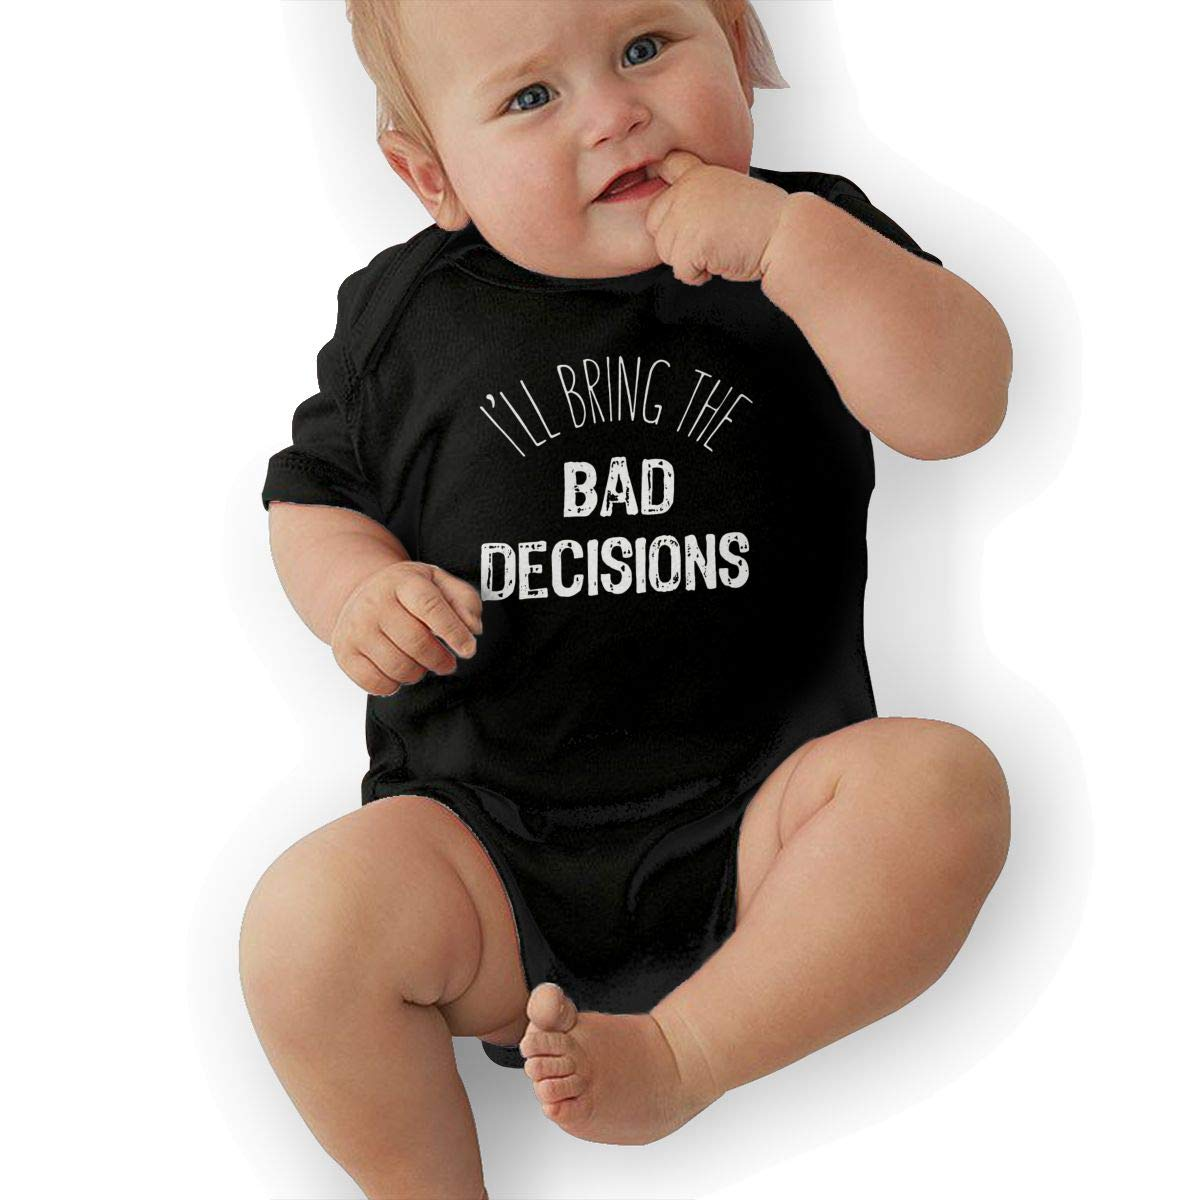 U88oi-8 Short Sleeve Cotton Rompers for Baby Boys and Girls Soft Ill Bring Bad Decisions Onesies